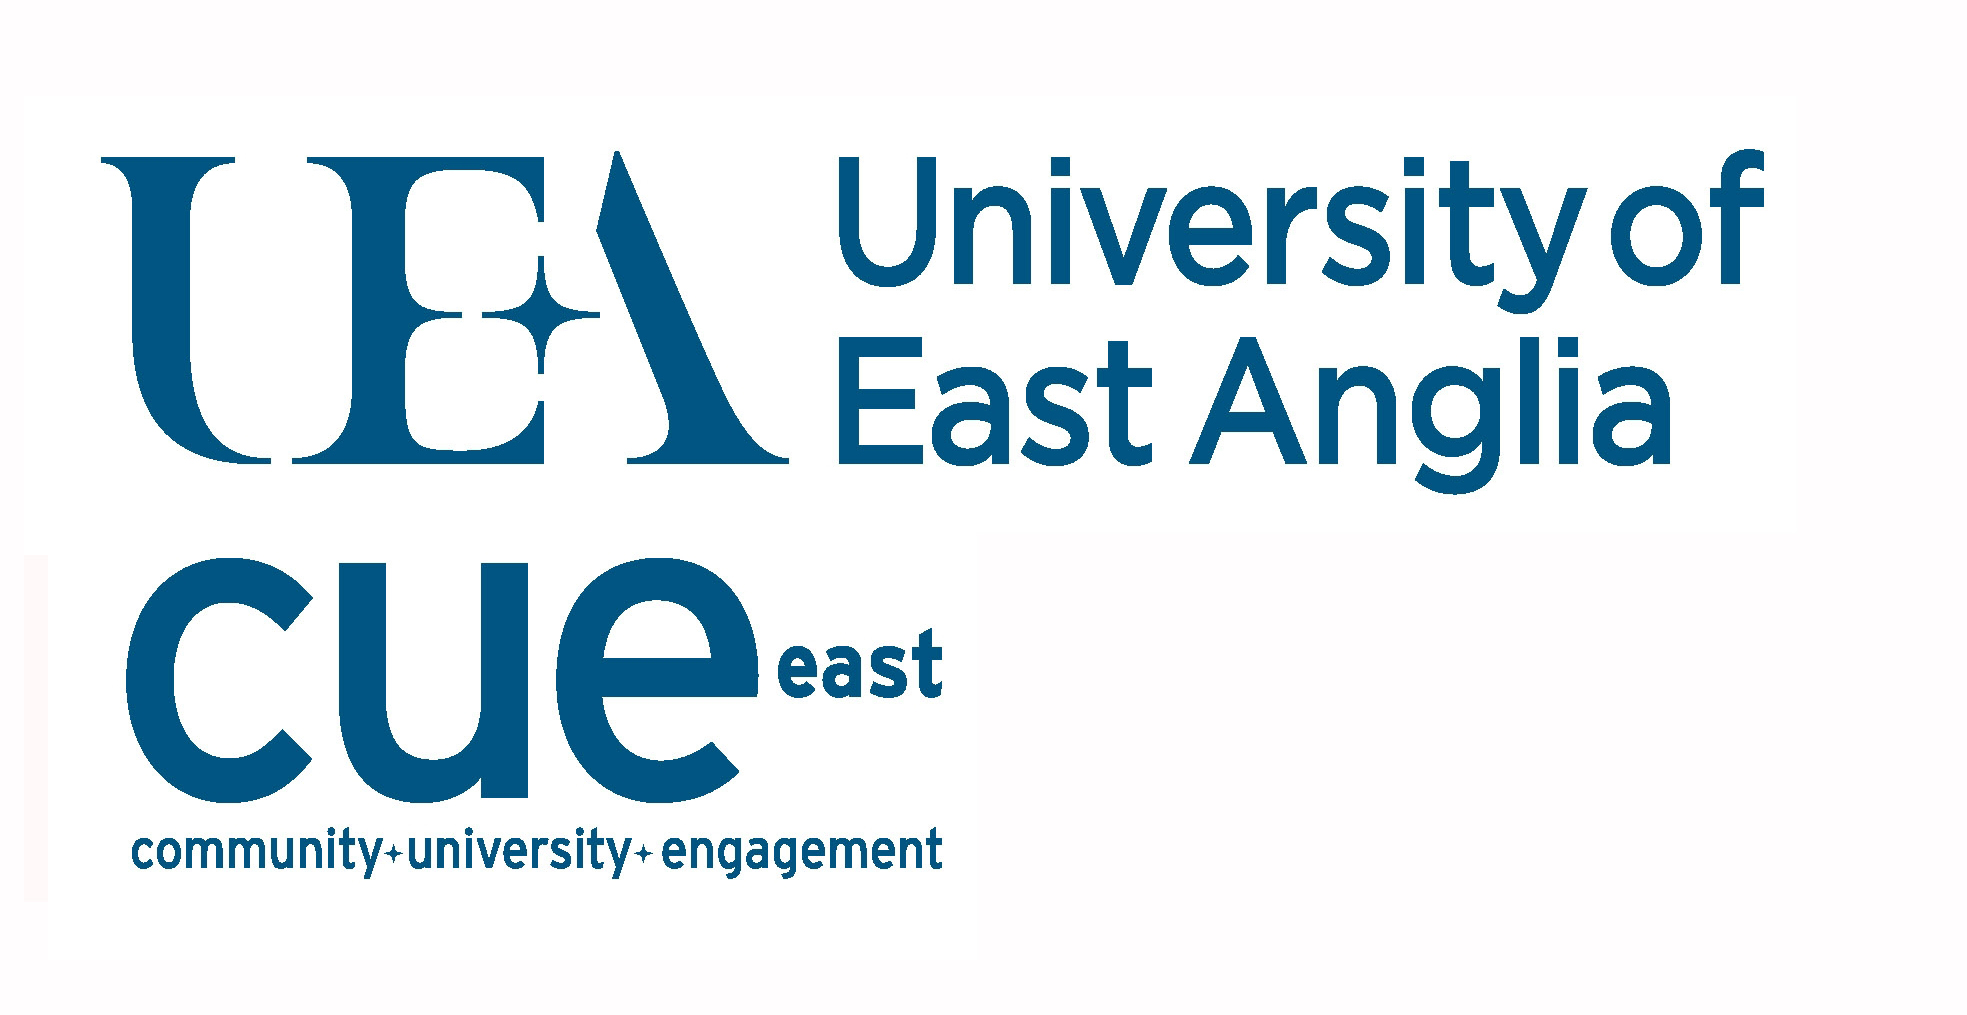 literature and creative writing uea The uea creative writing ma reading list school of literature, drama, and creative writing we provide excellent essay writing service 24/7 dali nature morte vivante.